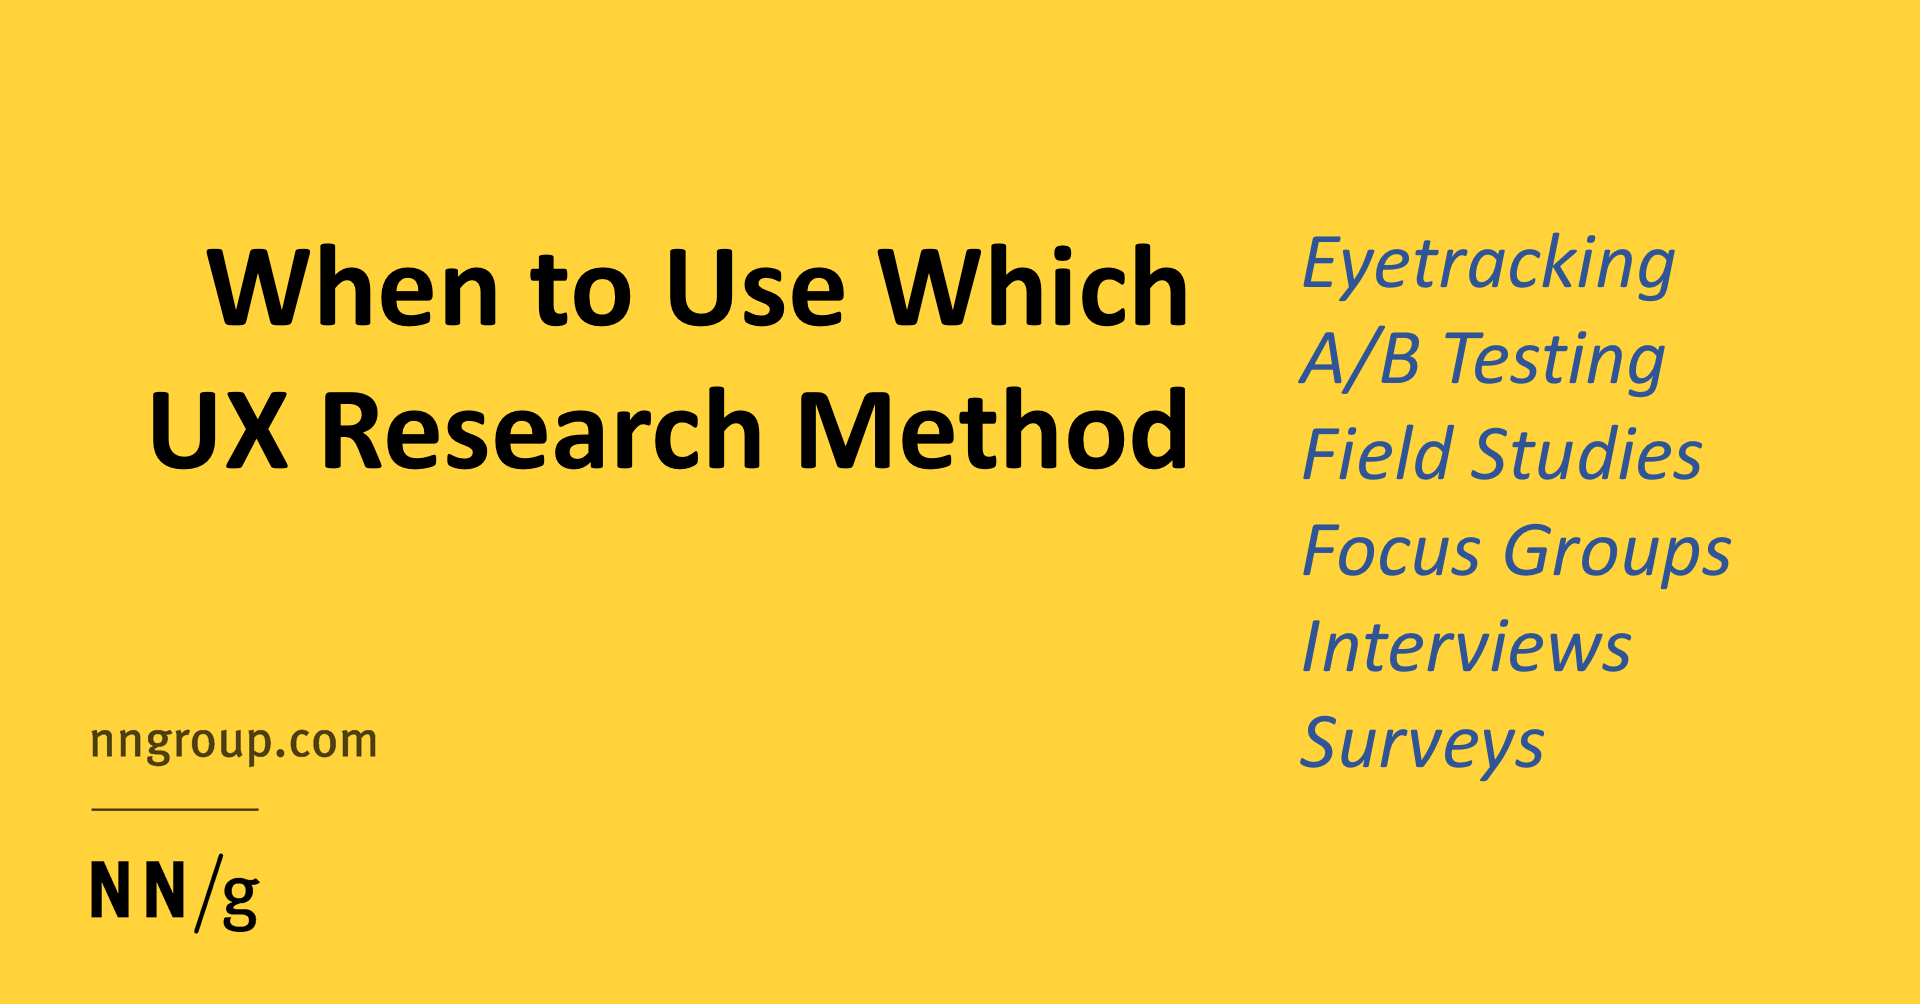 When to Use Which User-Experience Research Methods